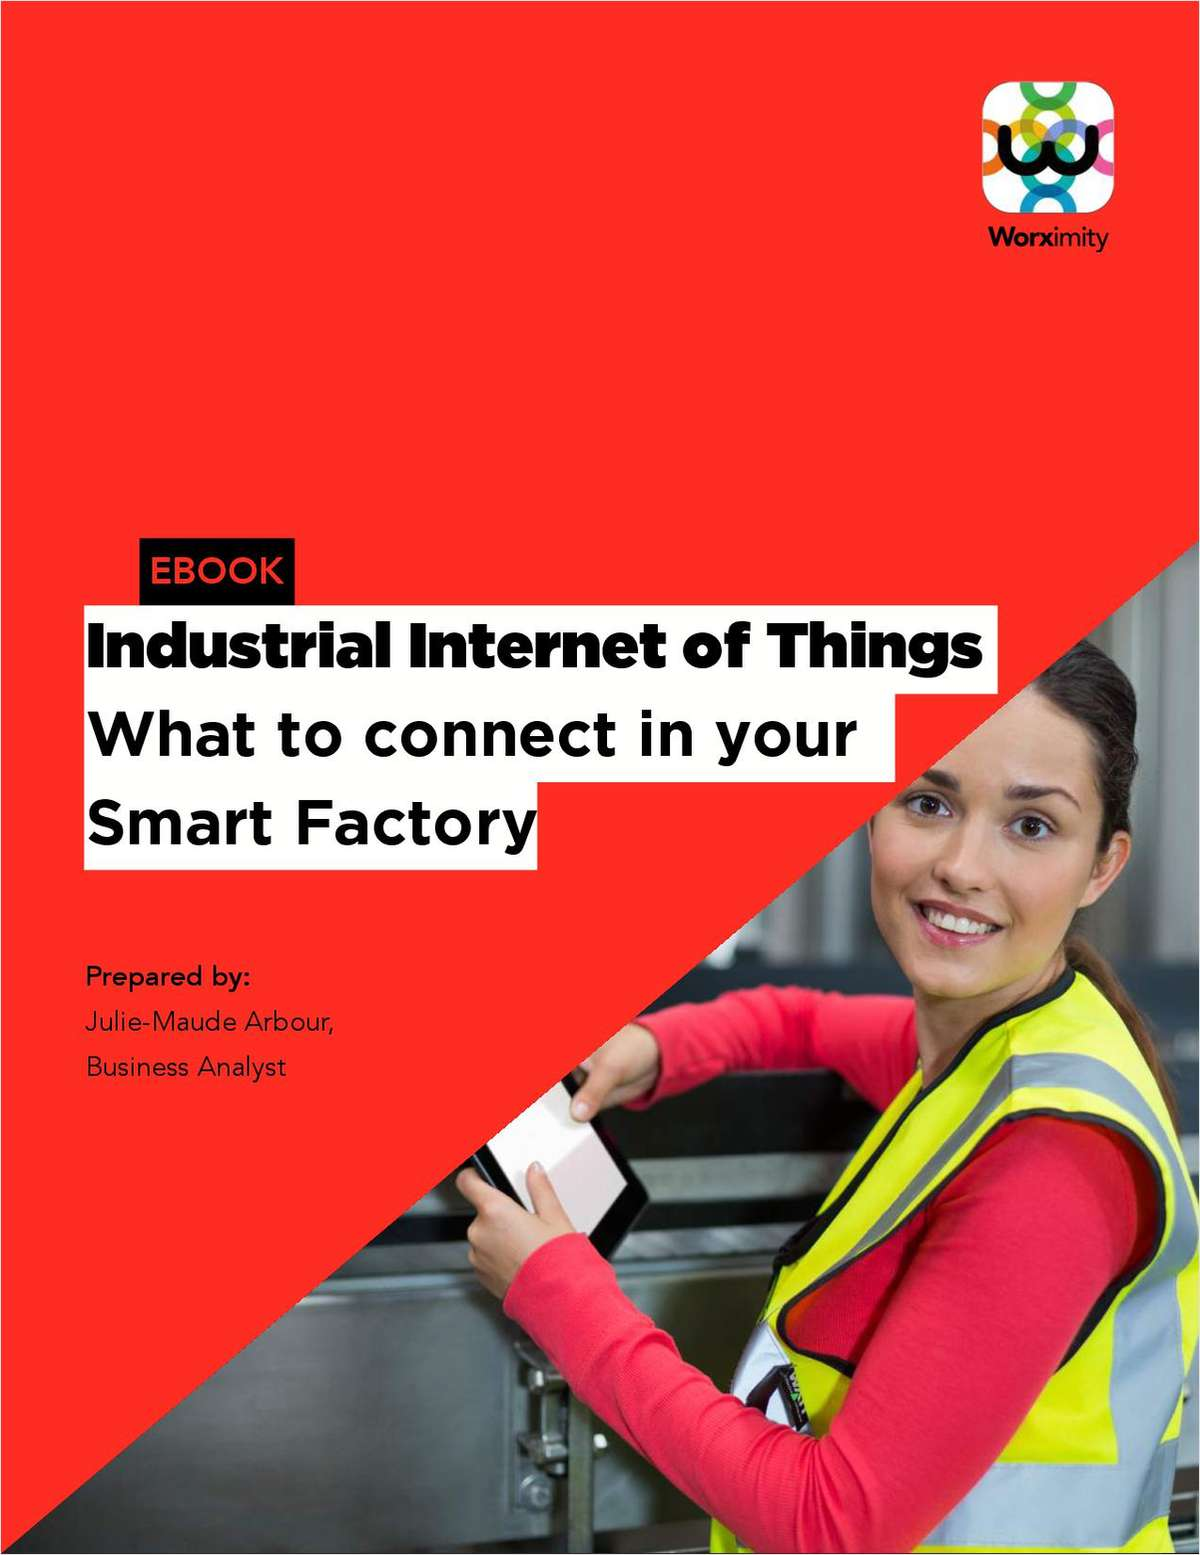 Industrial Internet of Things - What to Connect in Your Factory